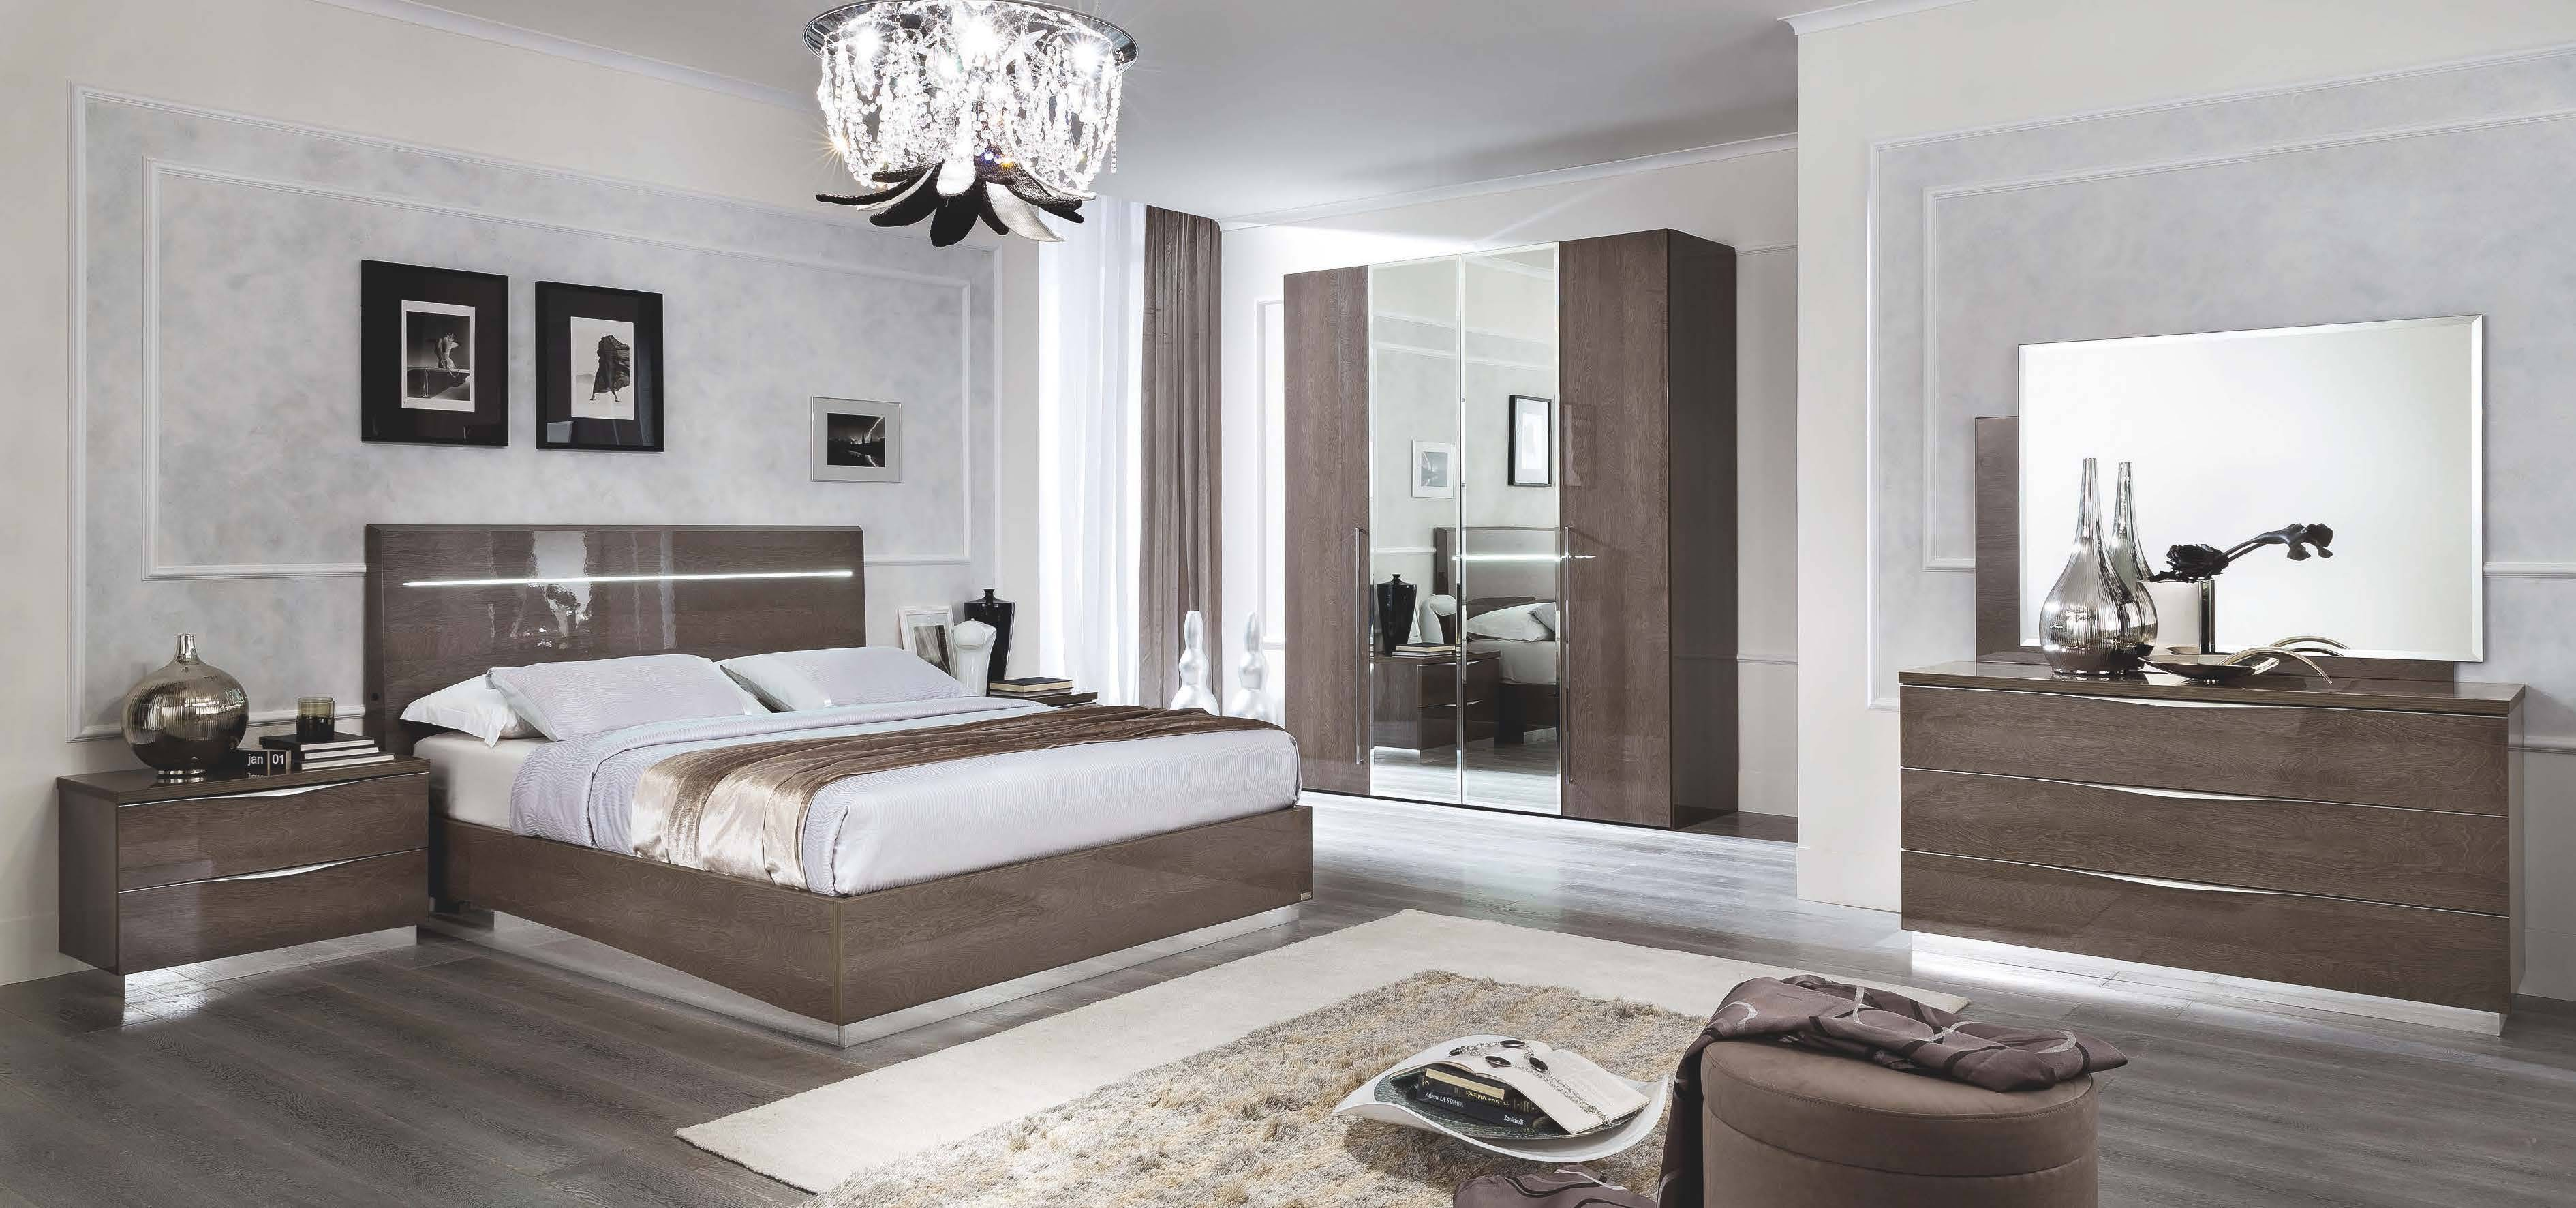 Made in Italy Quality High End Bedroom Sets San Jose